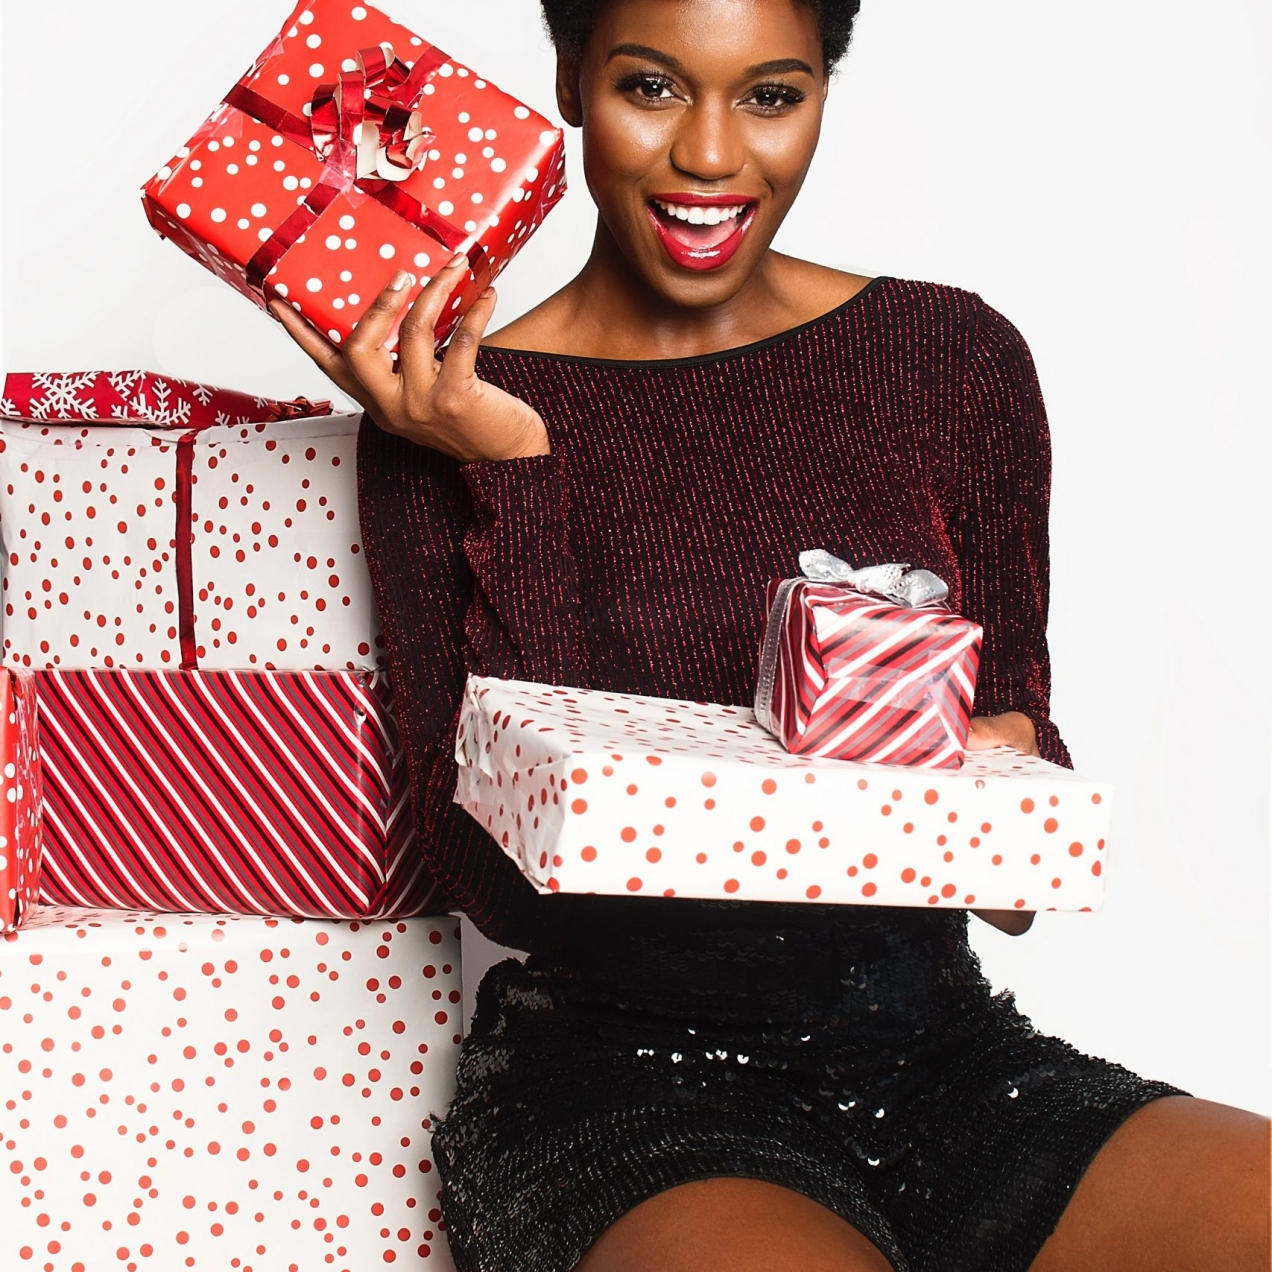 11 Last-Minute Gift Ideas For The Hipster Black Girl